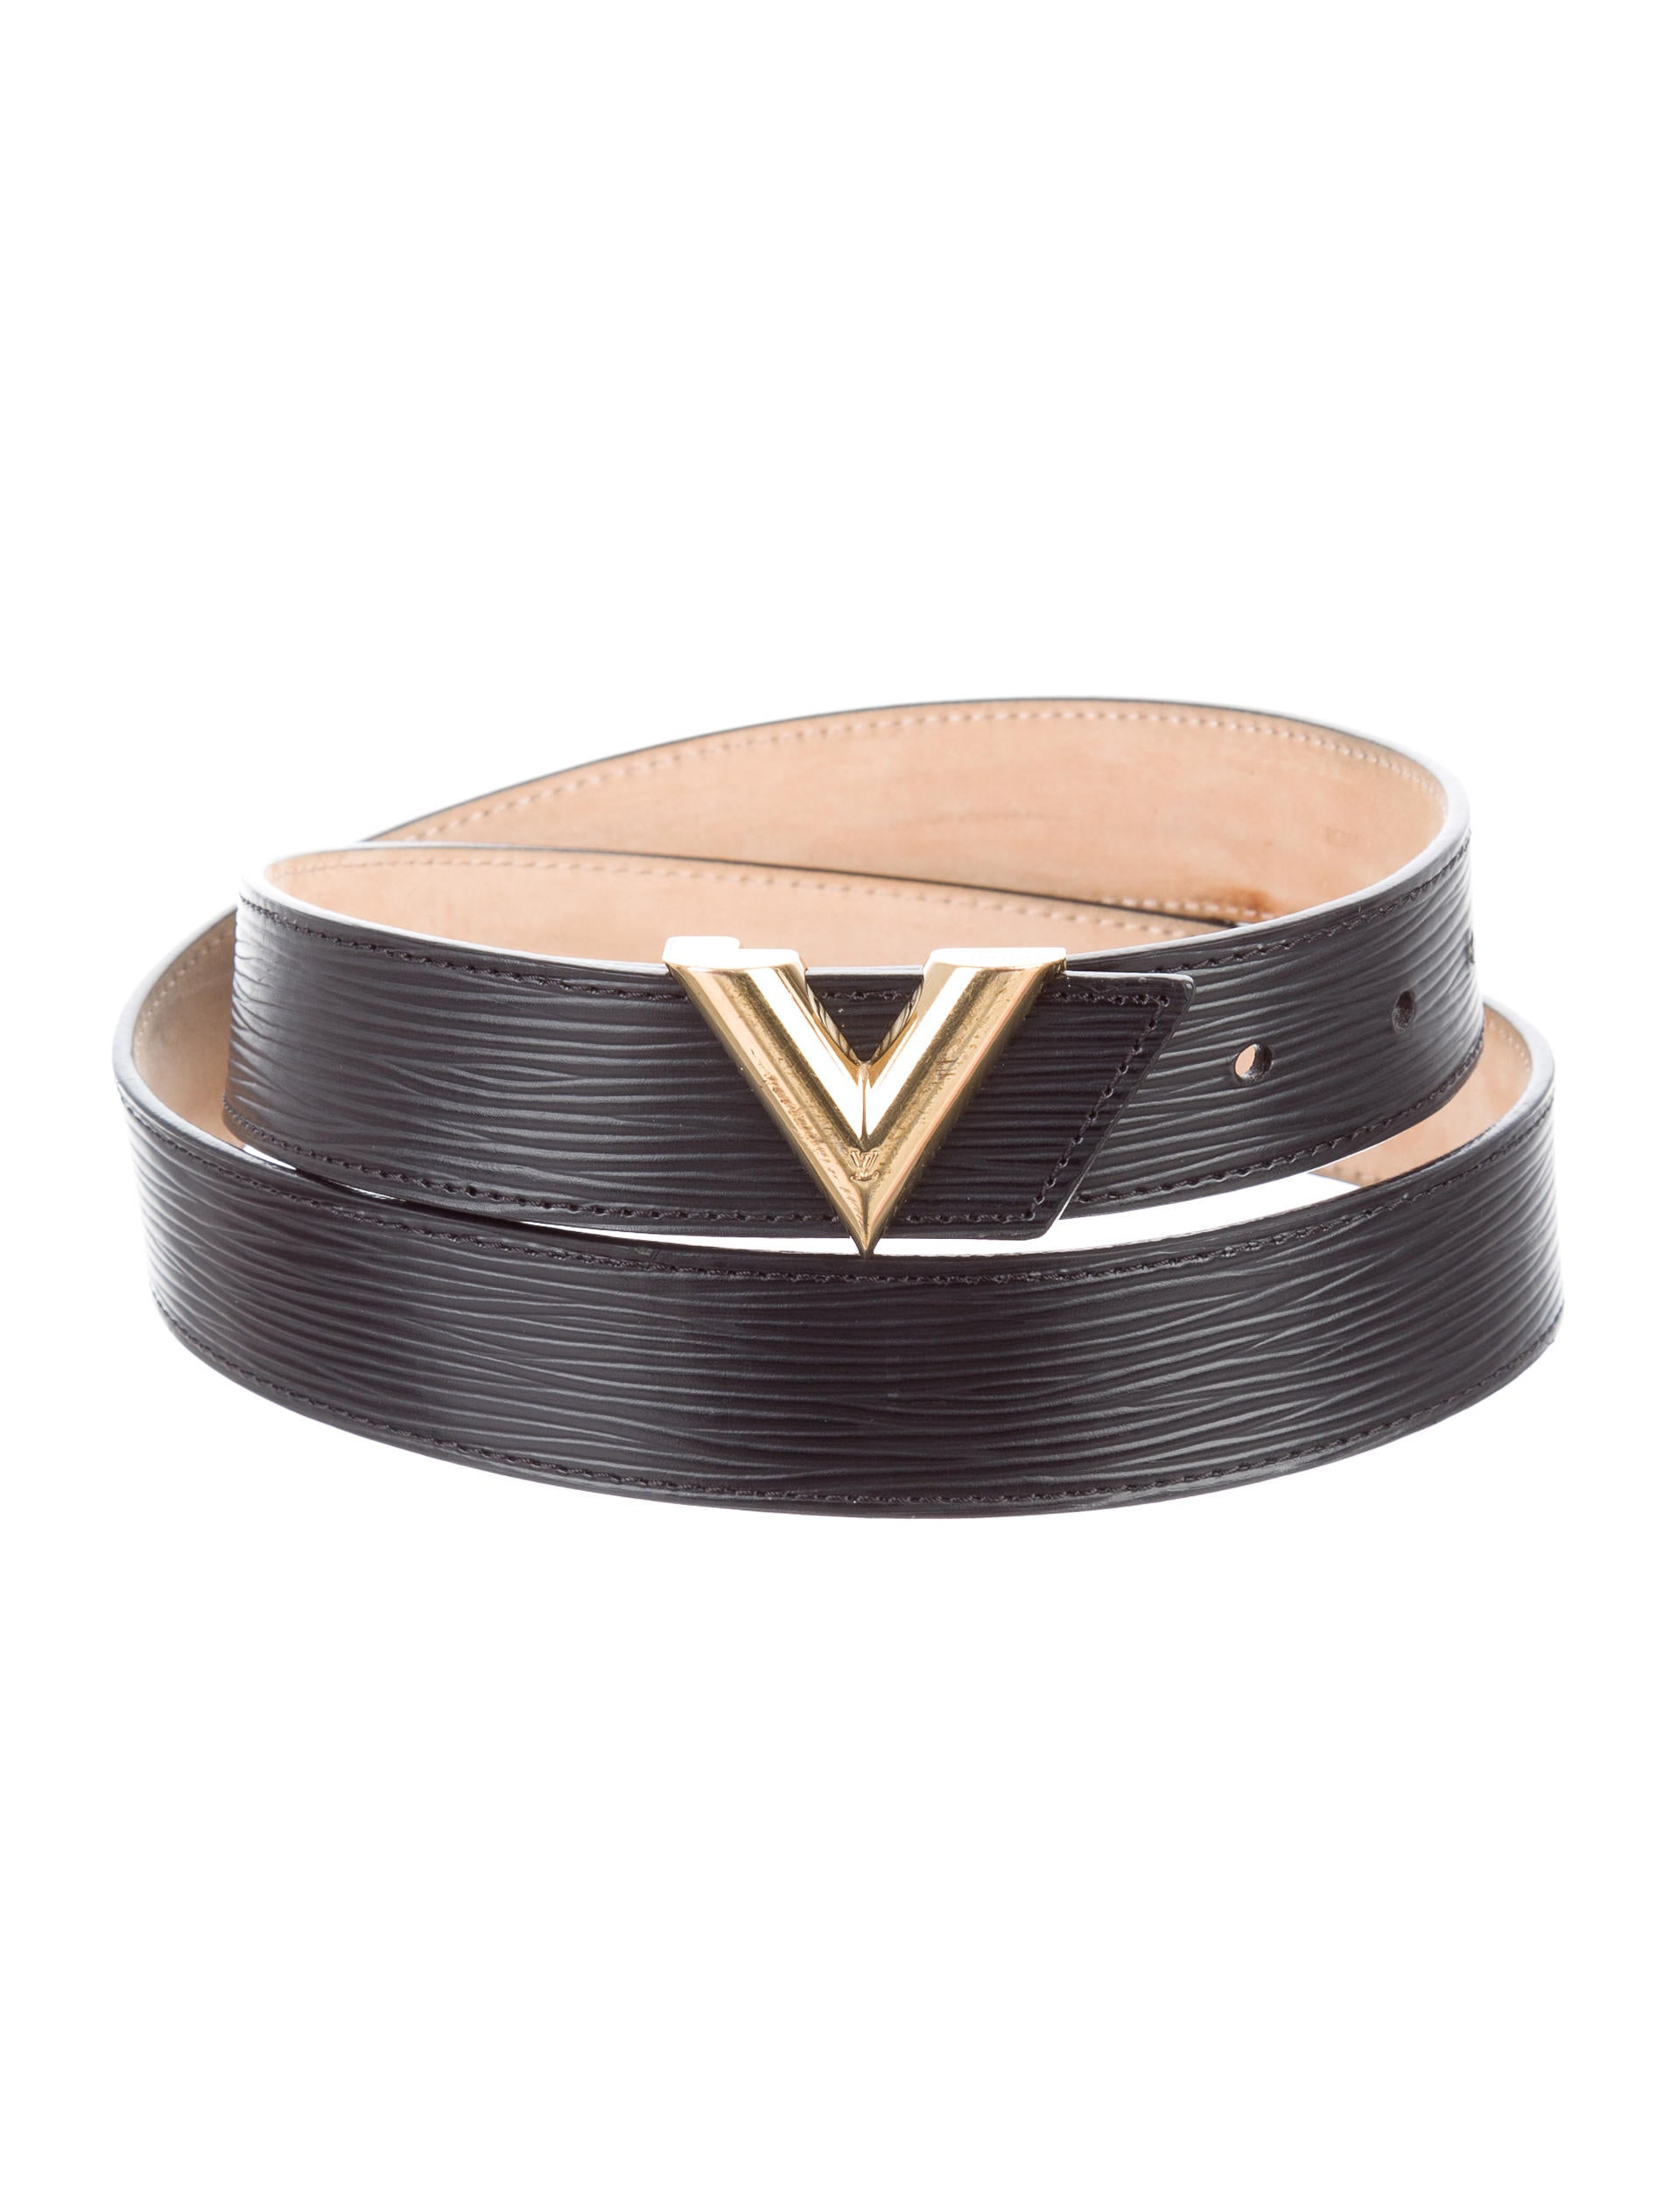 db9aa3e80097 Louis Vuitton Essential V Belt - Accessories - LOU131904